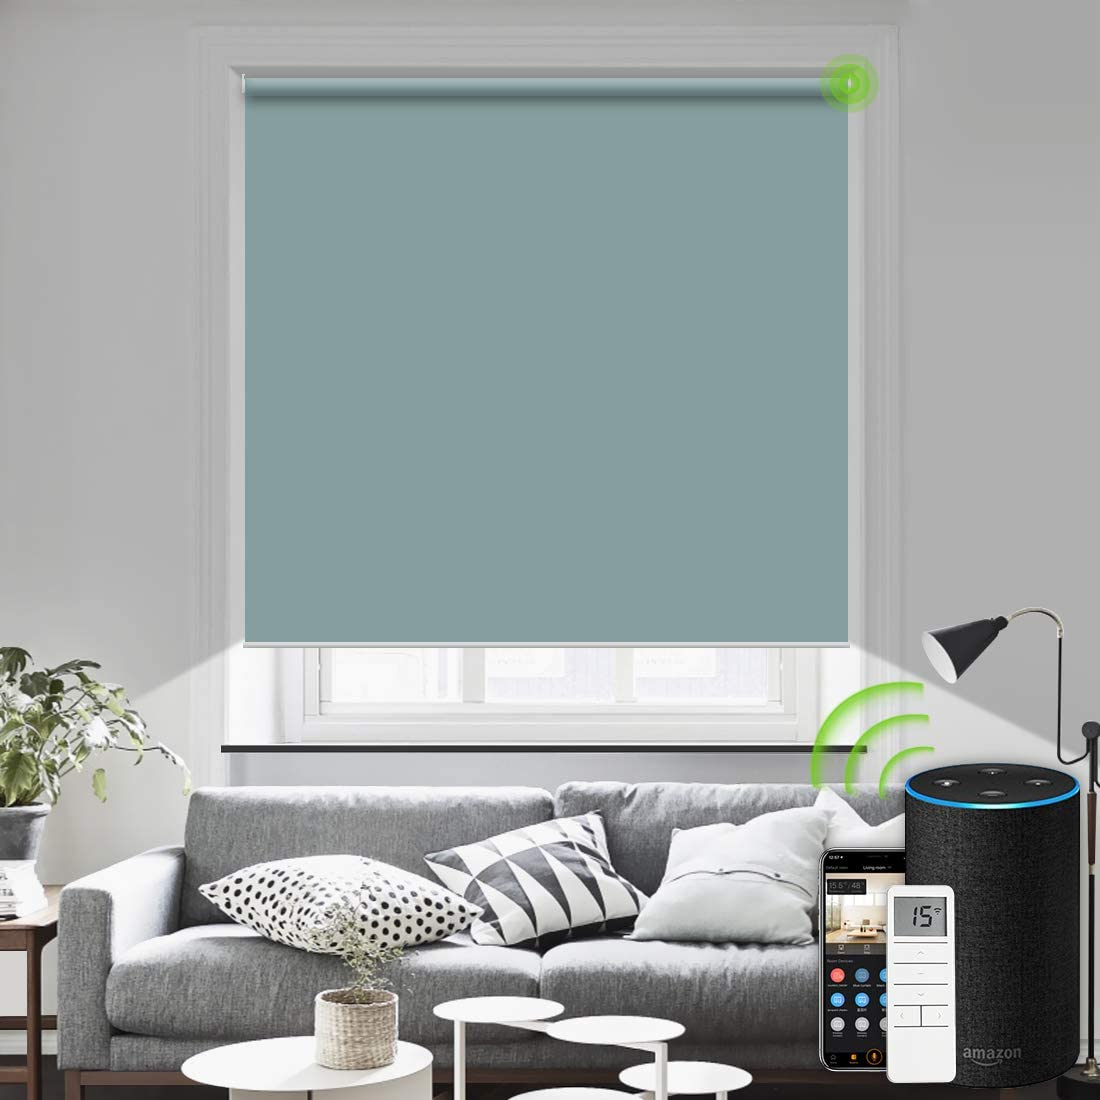 Yoolax Motorized Blind Shade for Window with Remote Control Smart Blind Shade Compatible with Alexa Motorize Roller Shade Blackout Battery Solar Powered Blind Custom up 98W X 138H(Vinyl-Lake Blue)